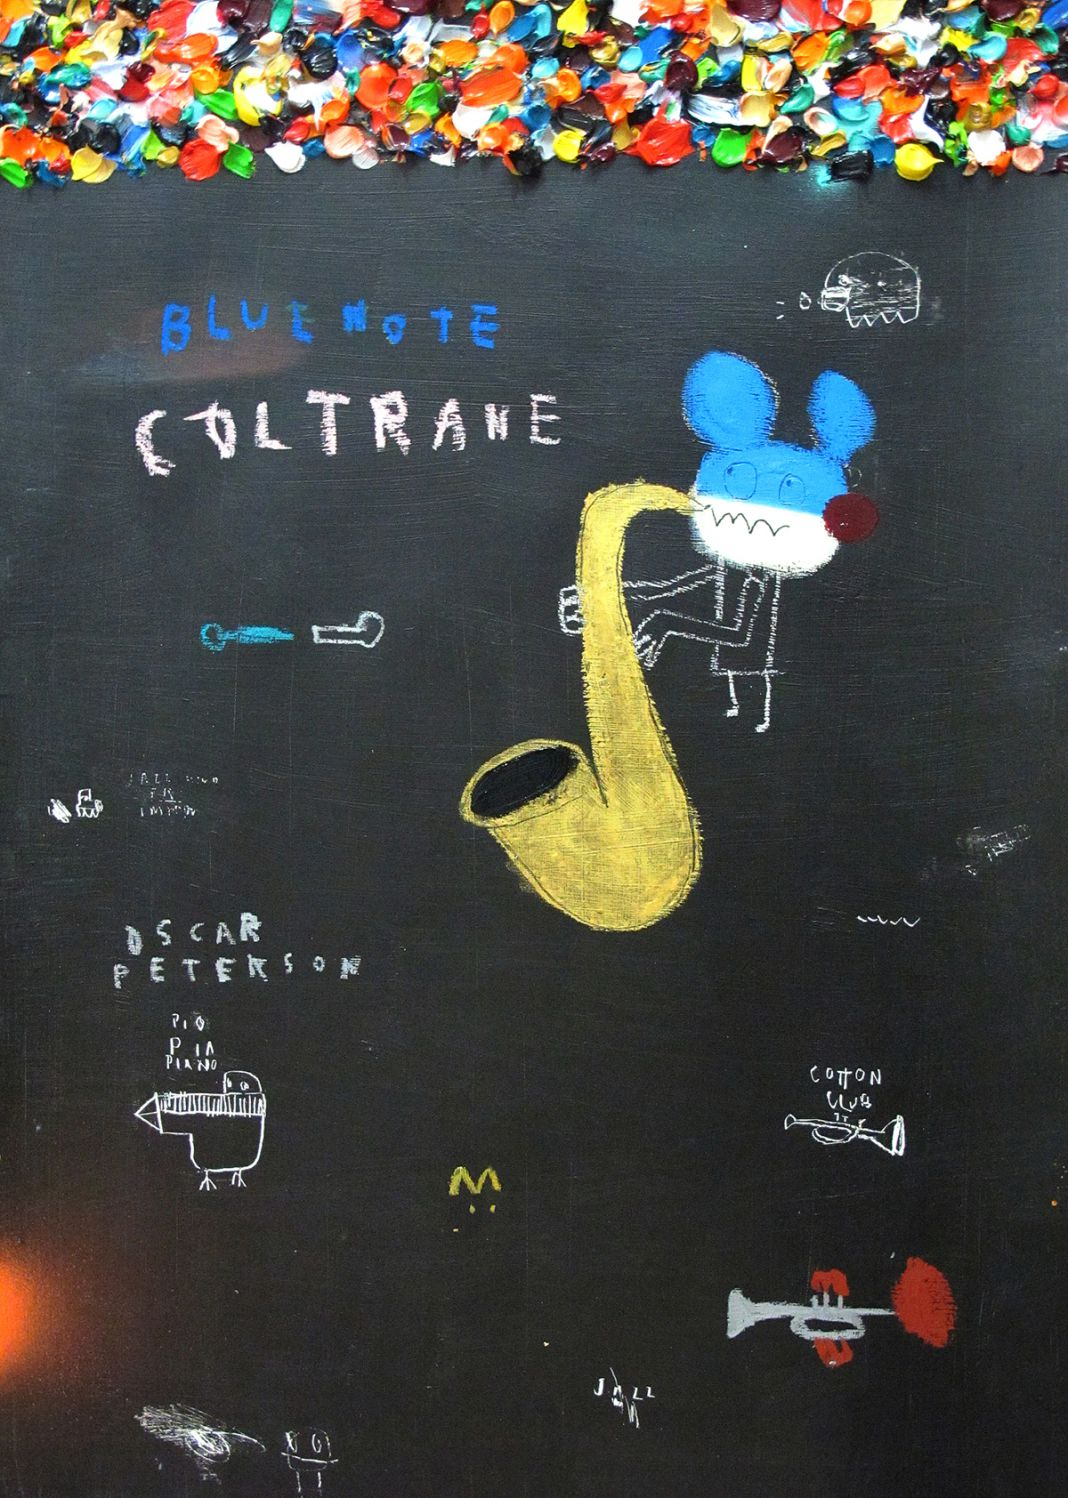 Bluenote coltrane. Edgar Plans